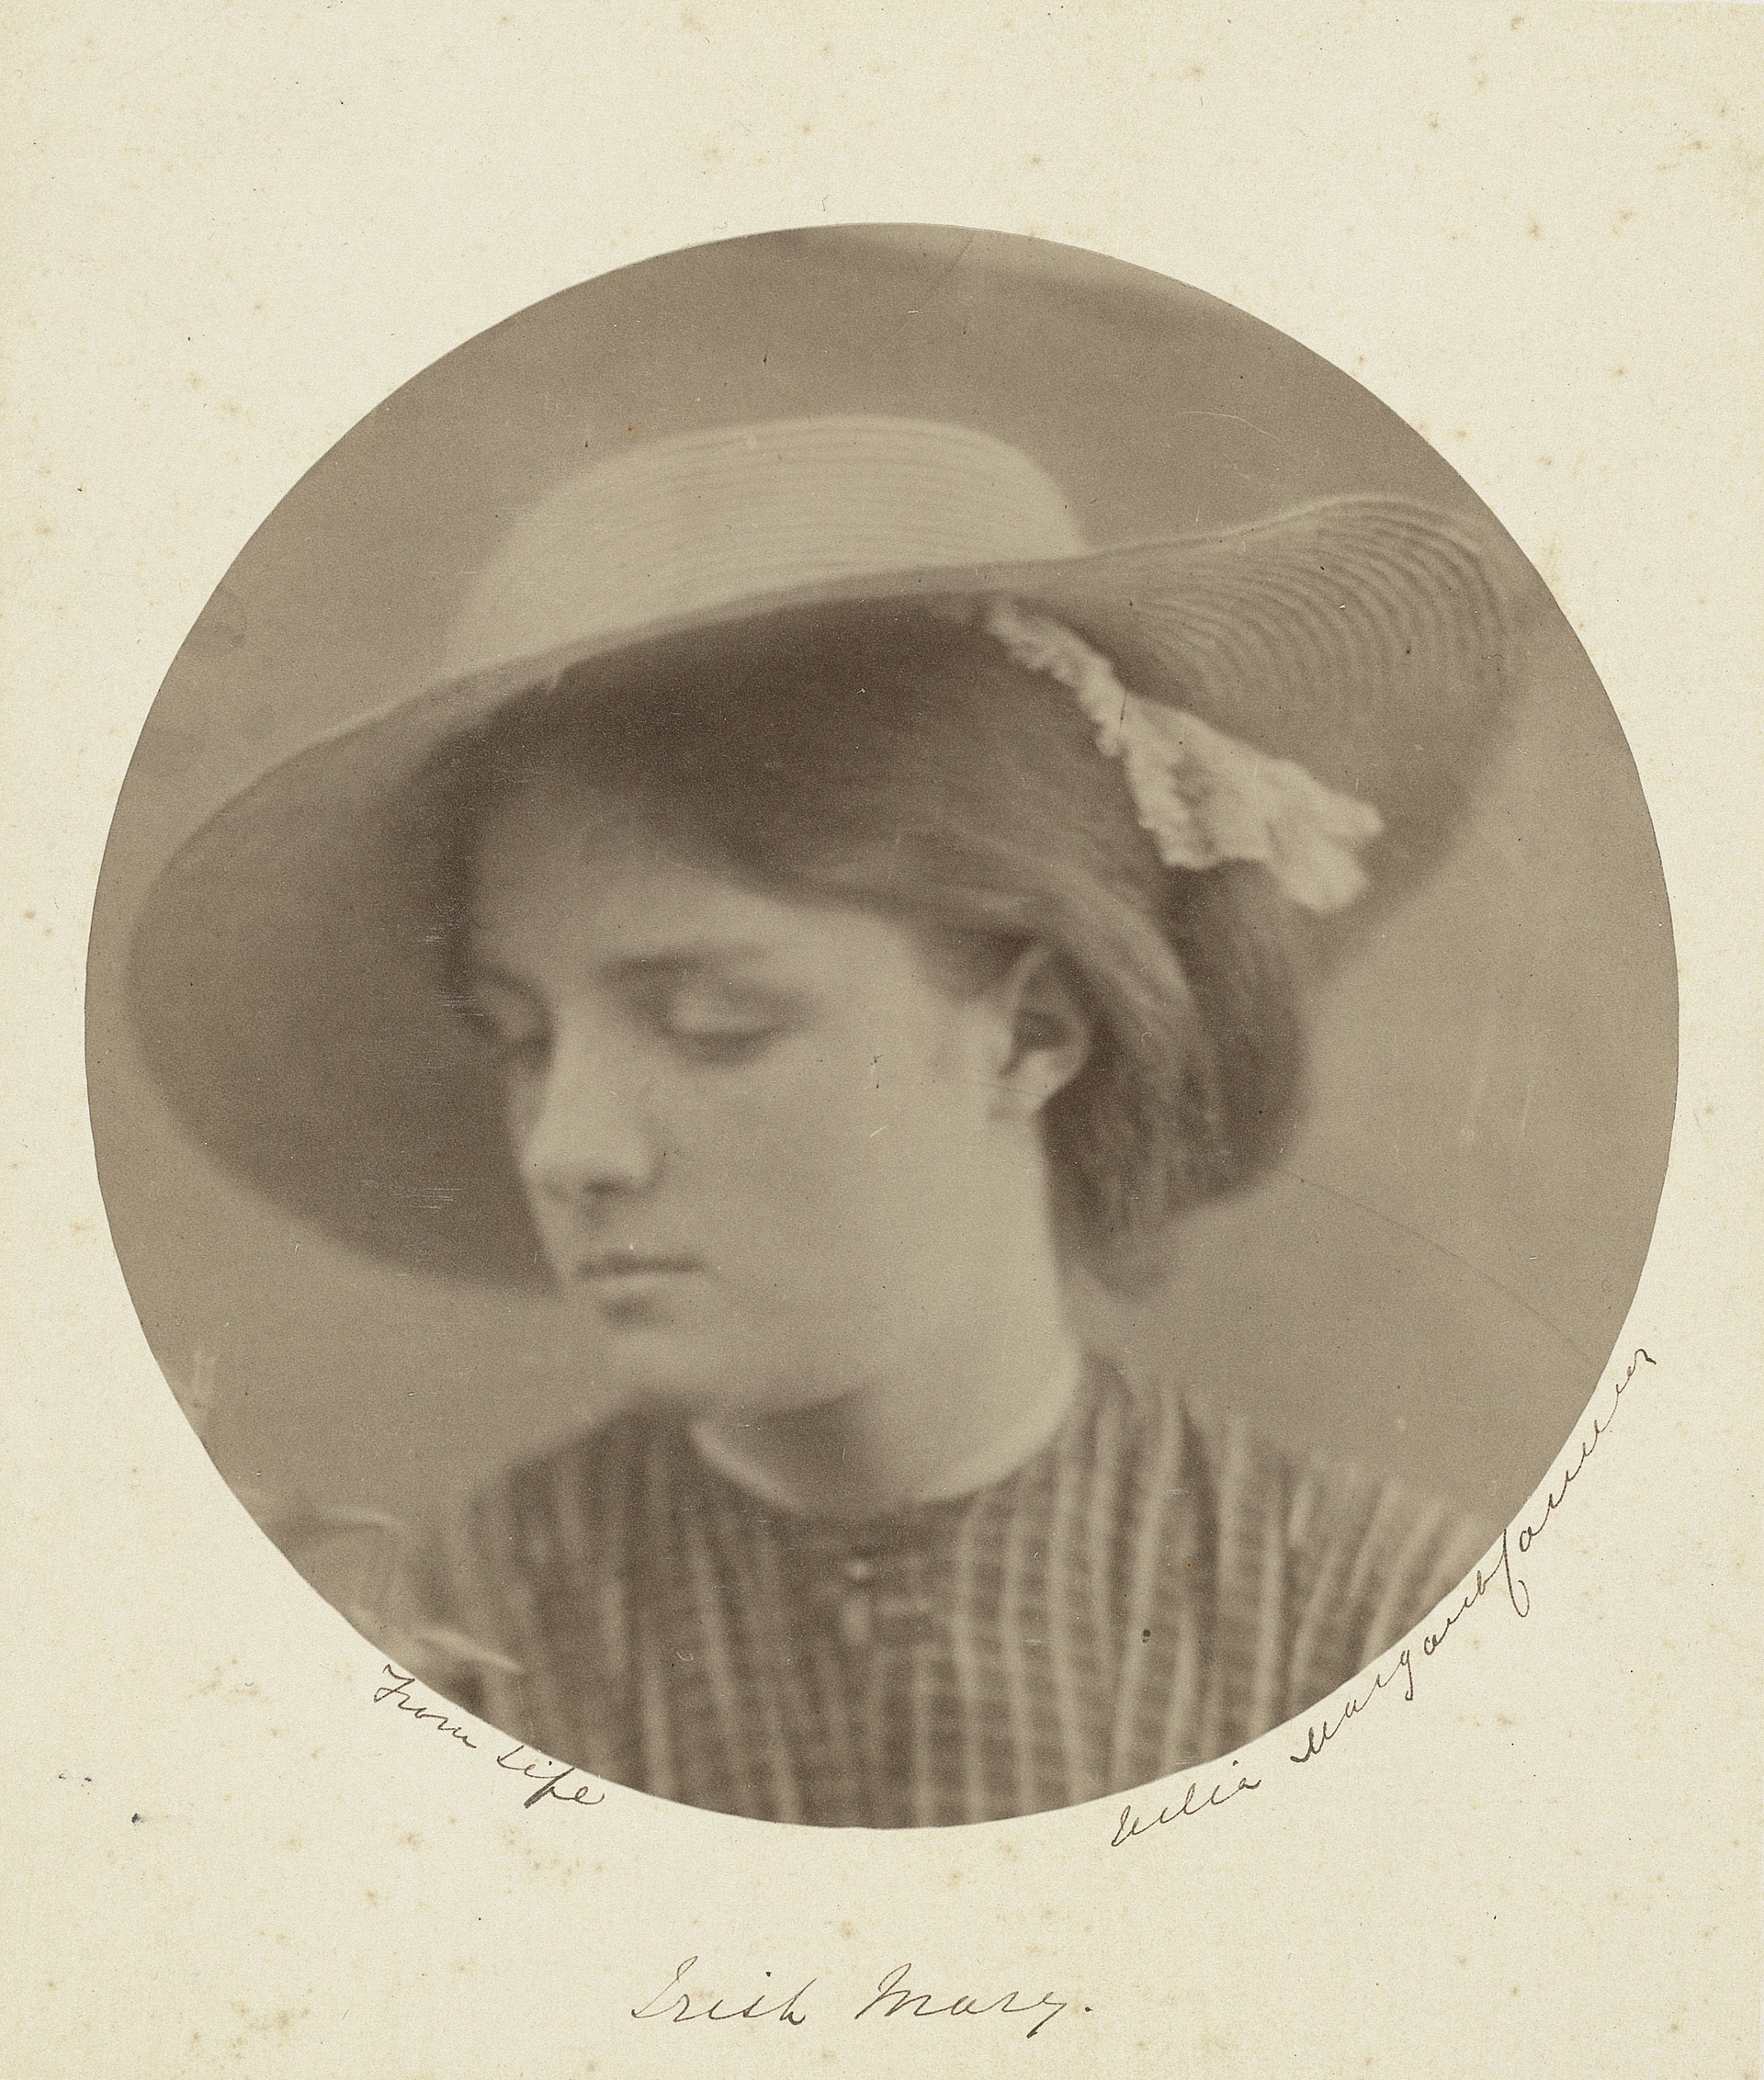 Julia Margaret Cameron, Irish Mary, 1866, albumen print on paper mounted to board, Gift of Mr. and Mrs. Melville Chapin, Yale Center for British Art, transfer from the Yale University Art Gallery